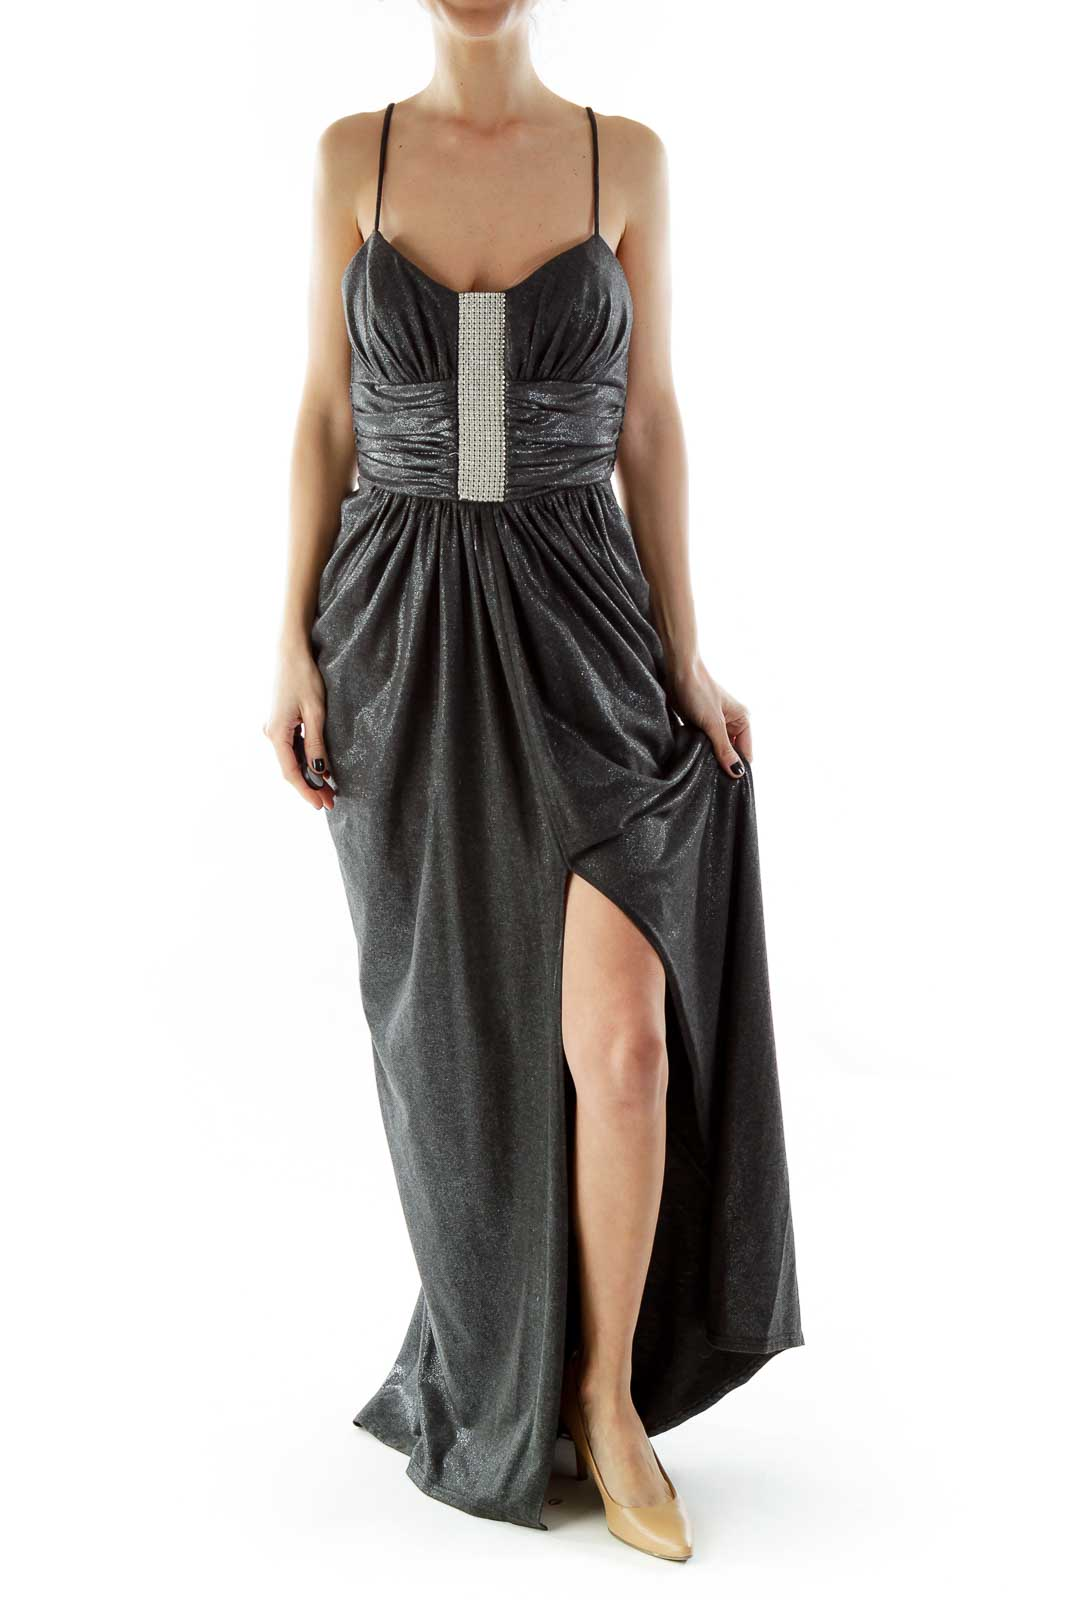 Gray Spaghetti Strap Metallic Evening Dress with Rhinestones